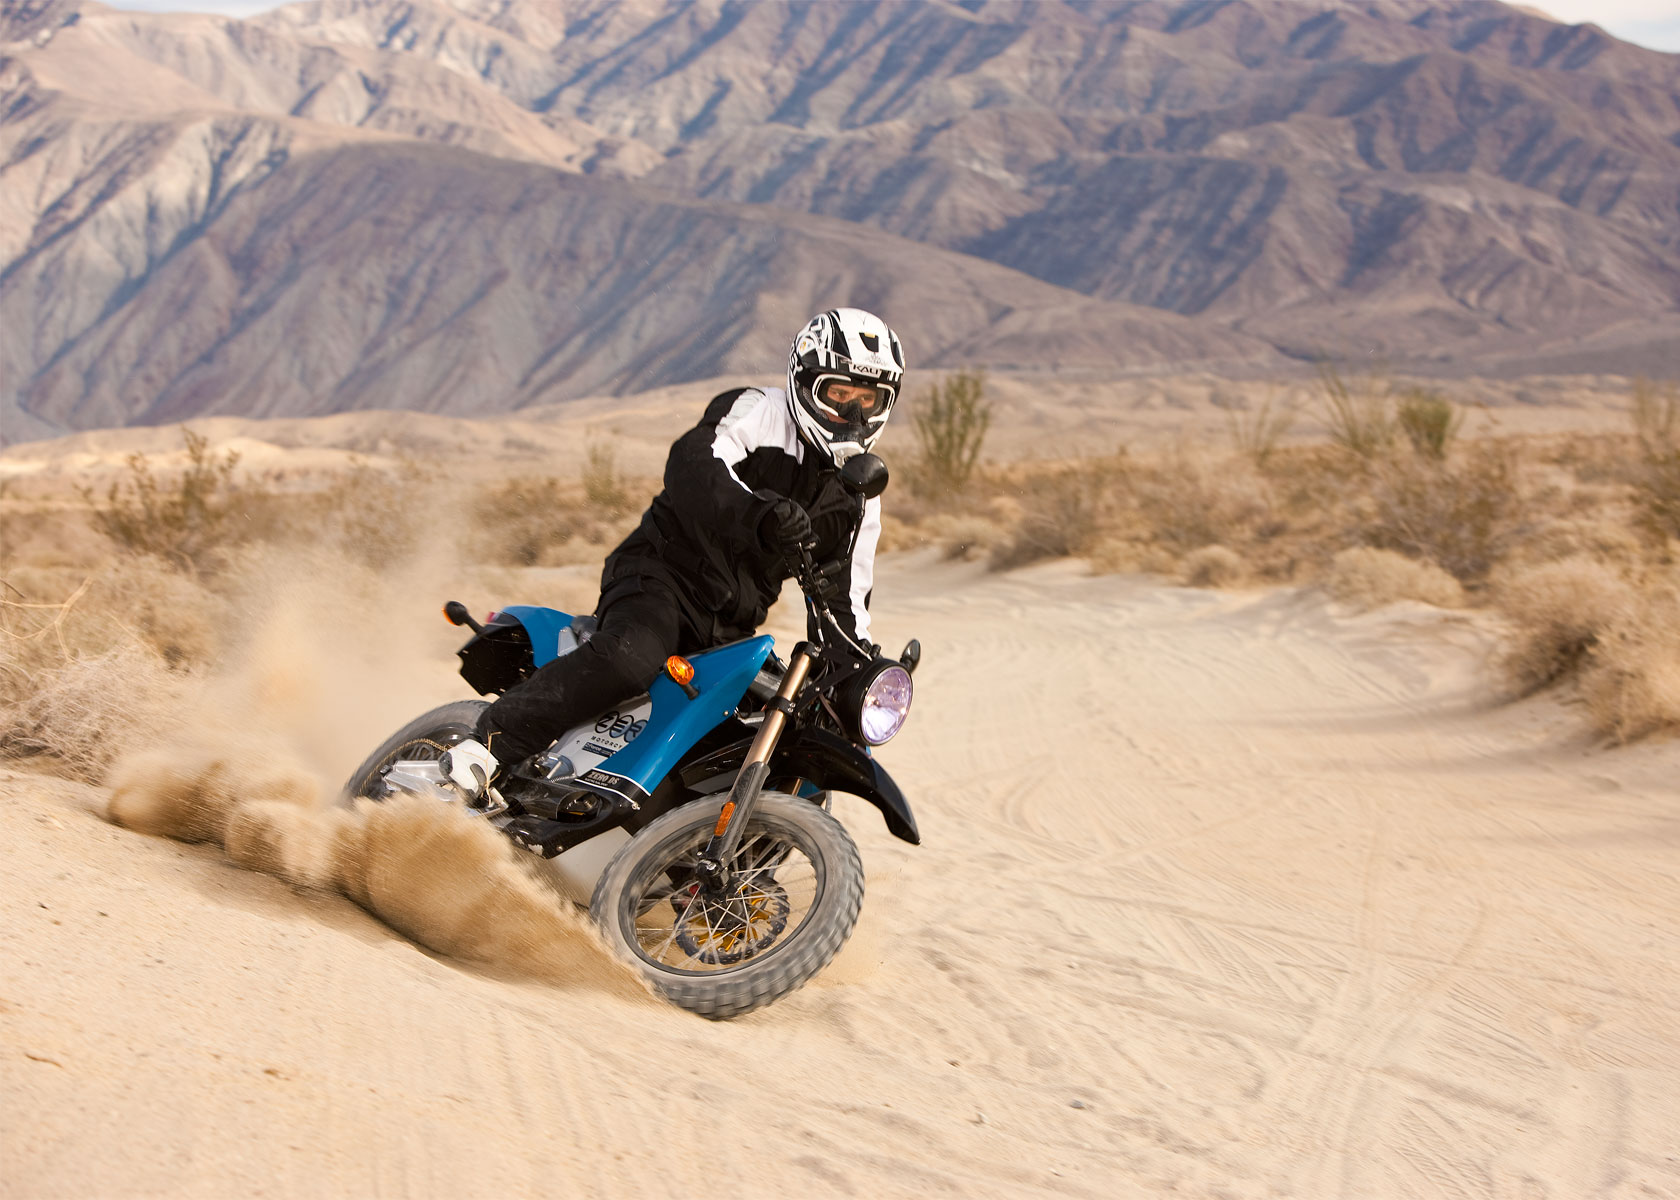 2010 Zero DS Electric Motorcycle: Anza Borego - Fishtail in Sand